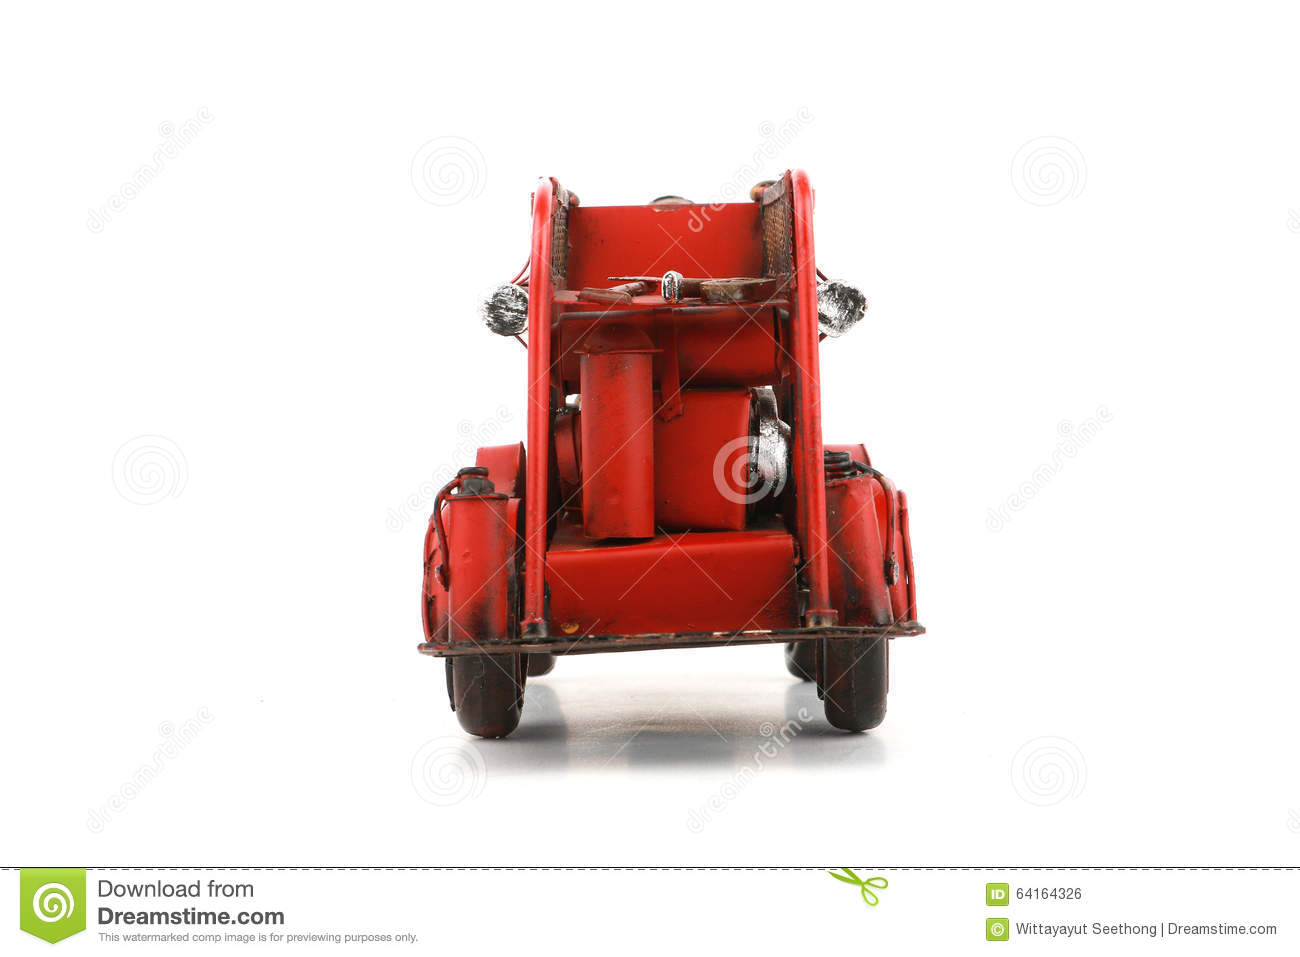 Antique Toy Fire Engine on white background, isolated